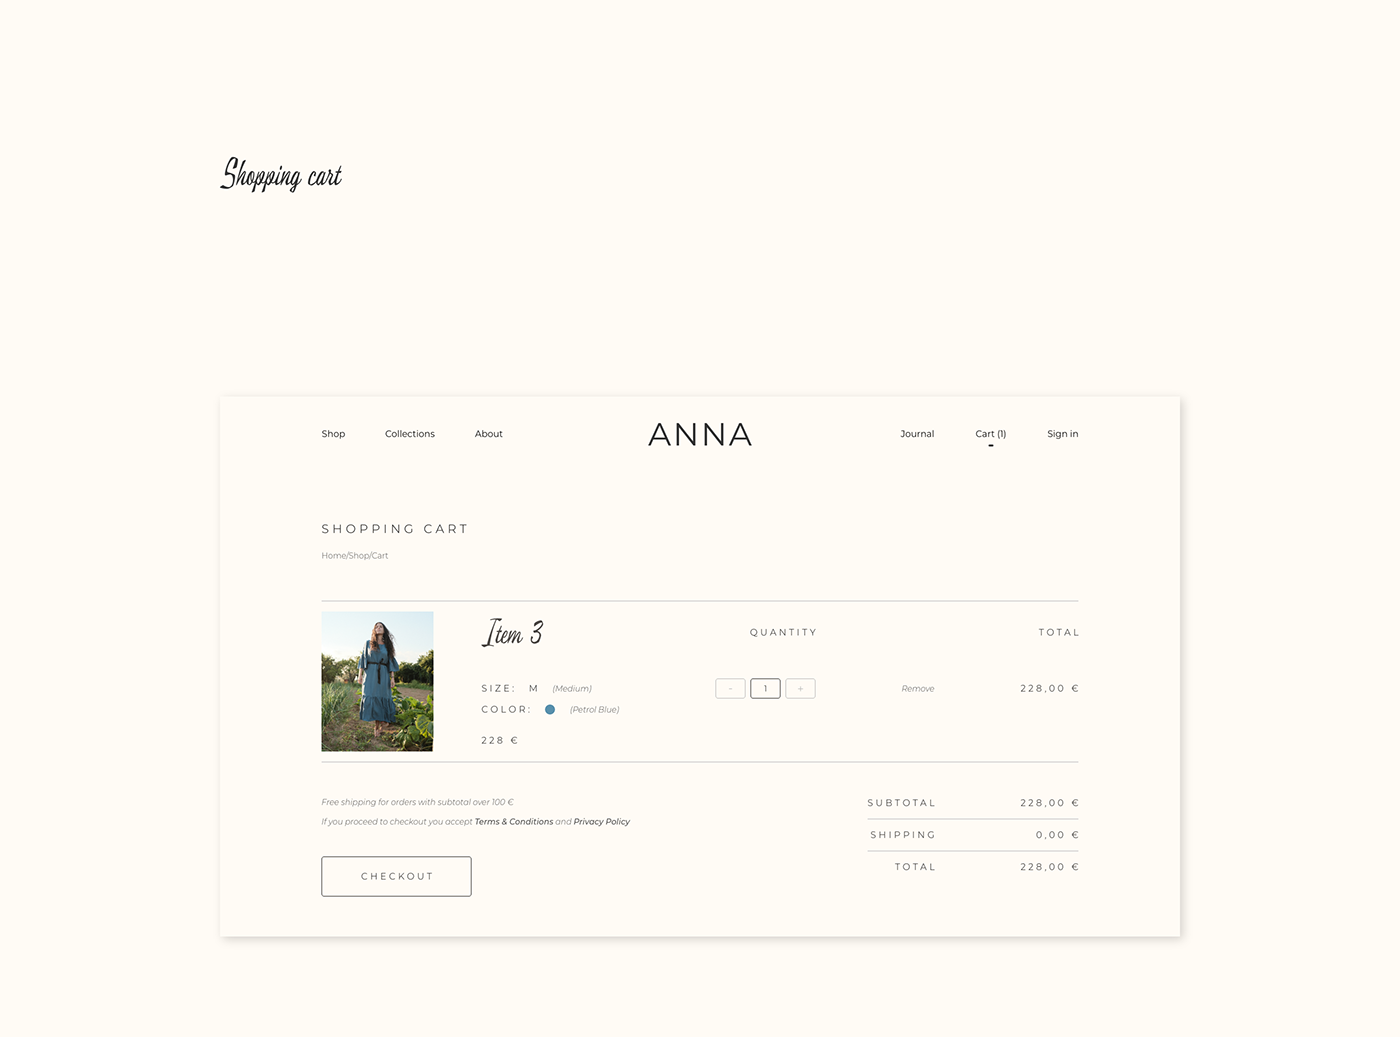 Shopping cart page of ANNA by Anna Graziani website